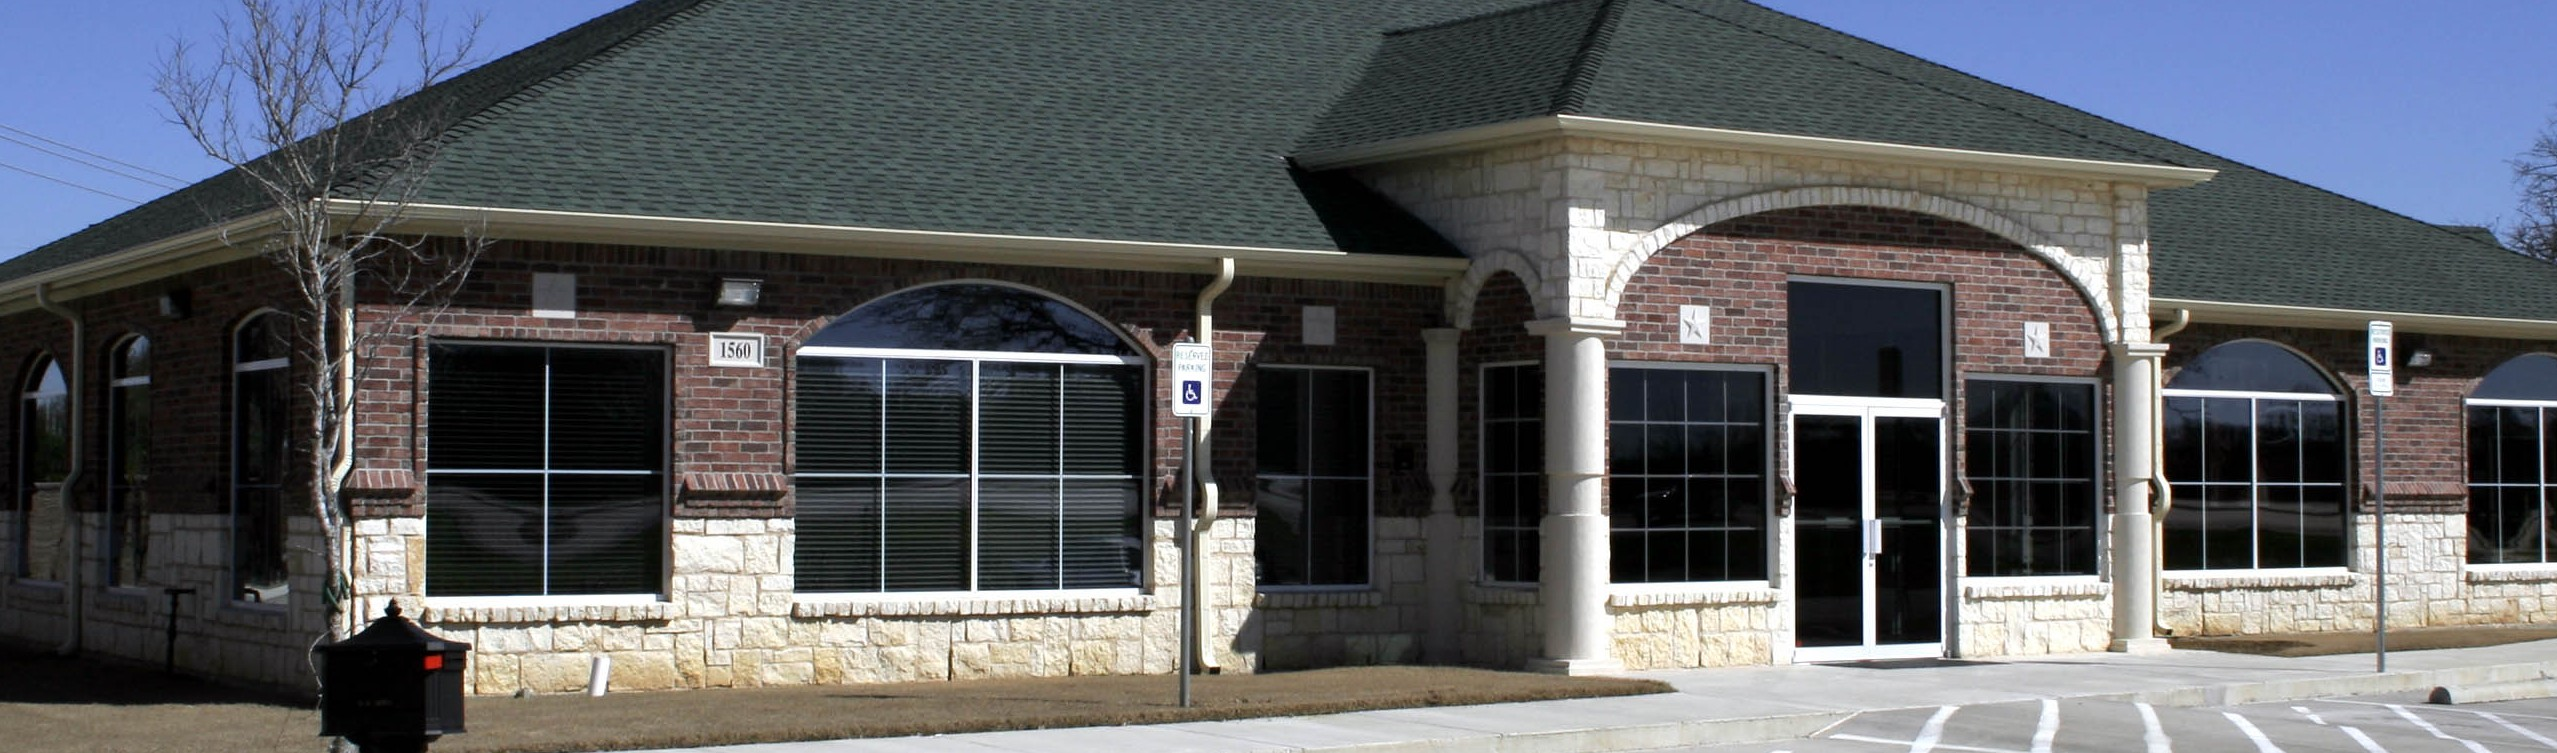 Dr Glen Boyd Doctors Office Construction Front View